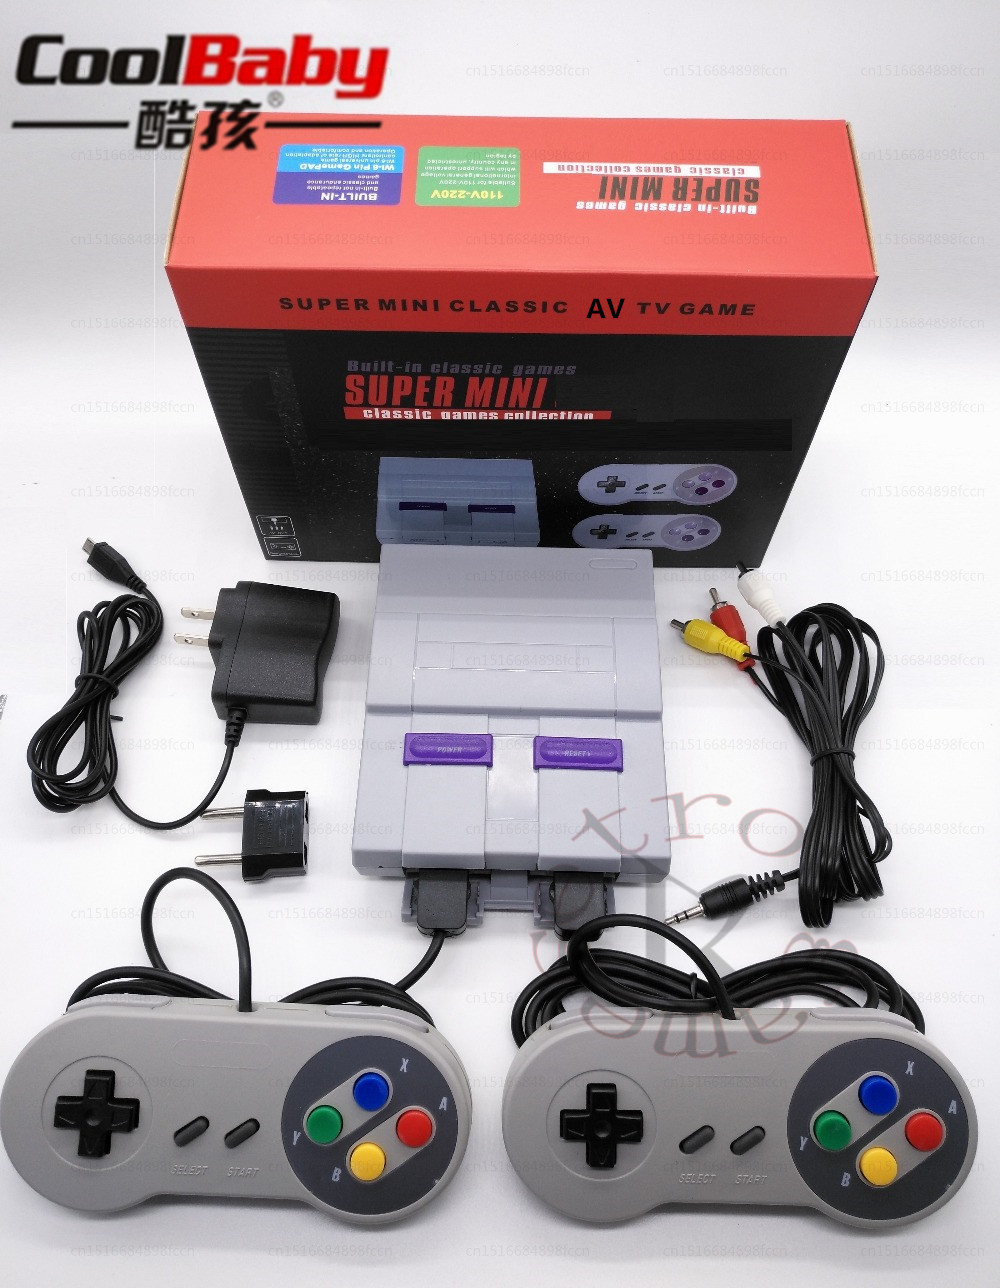 For Snes 16 Bit Games!! Retro Mini TV Video Game Console with 94 Built-in Different 16 Bit Games For Snes Two Gamepads AV Out for retroport for nes to for snes cartridge adapter for niinntteennddo snes 16 bit consoles